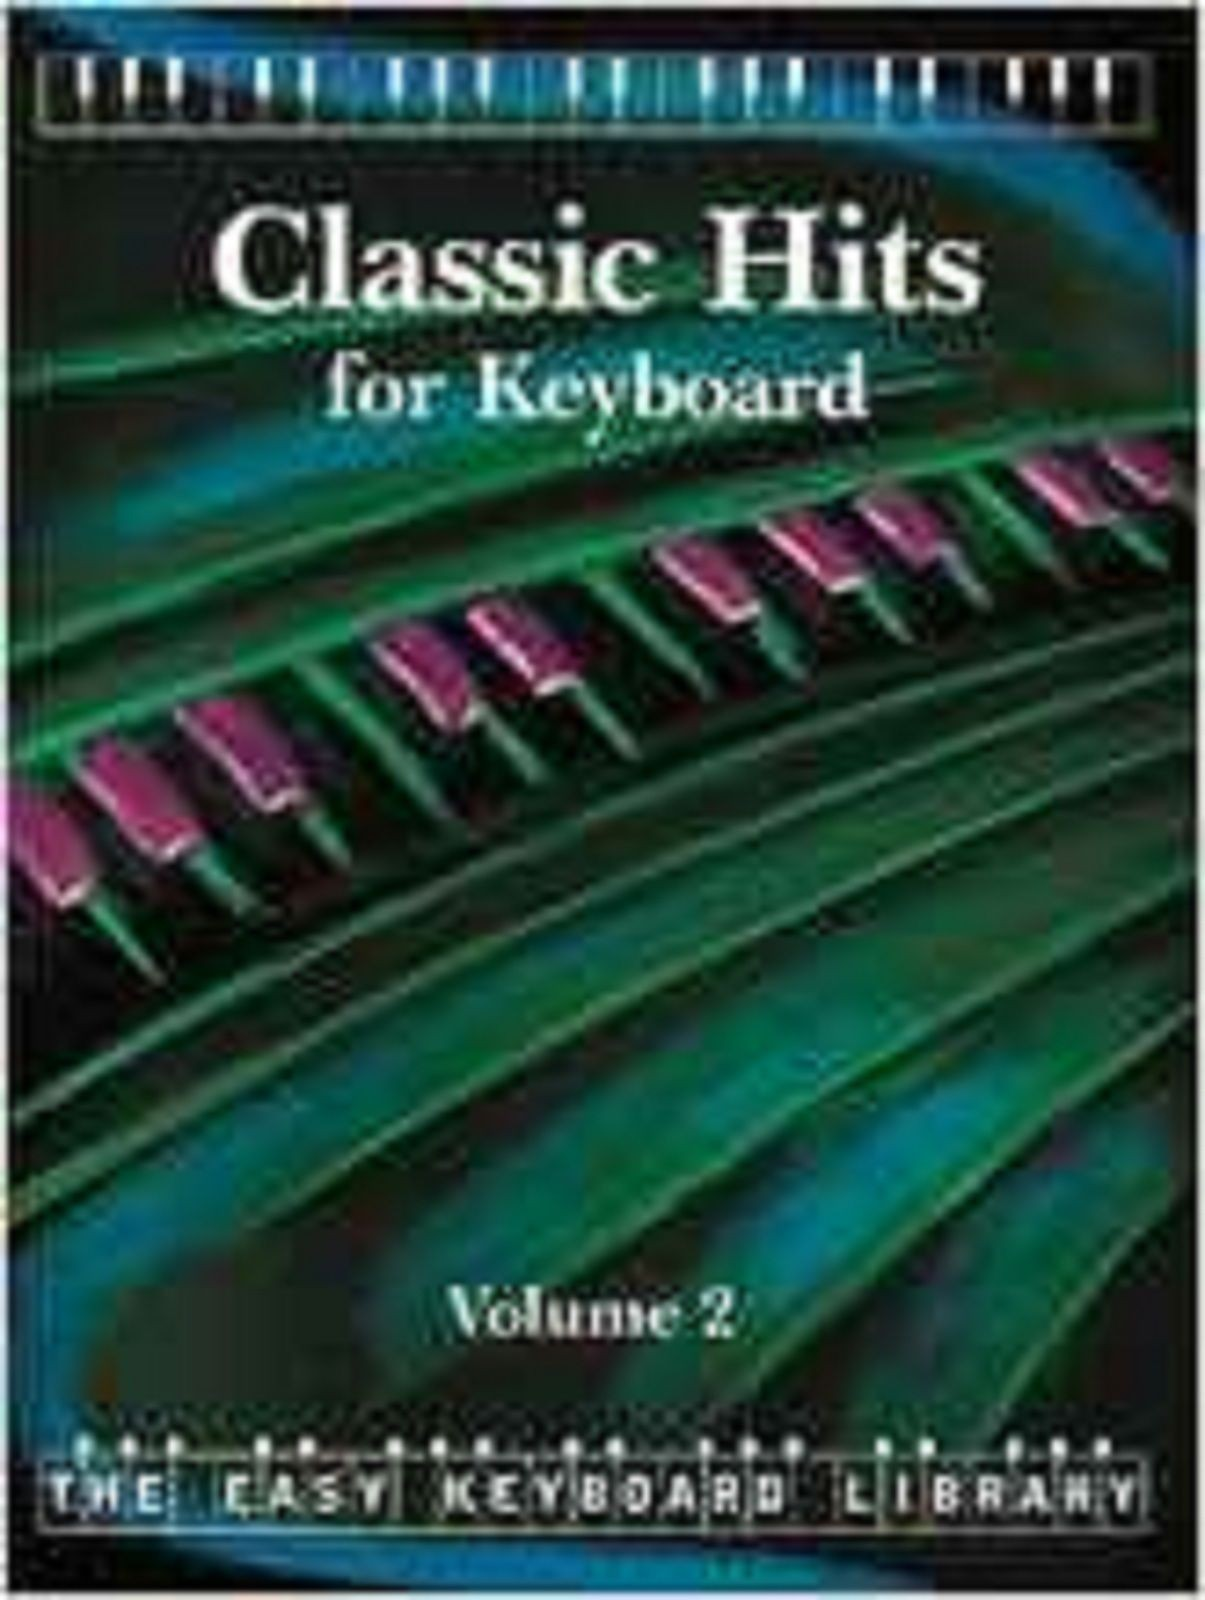 The Easy Keyboard Library Classic Hits for Keyboard Volume 2 Book S160